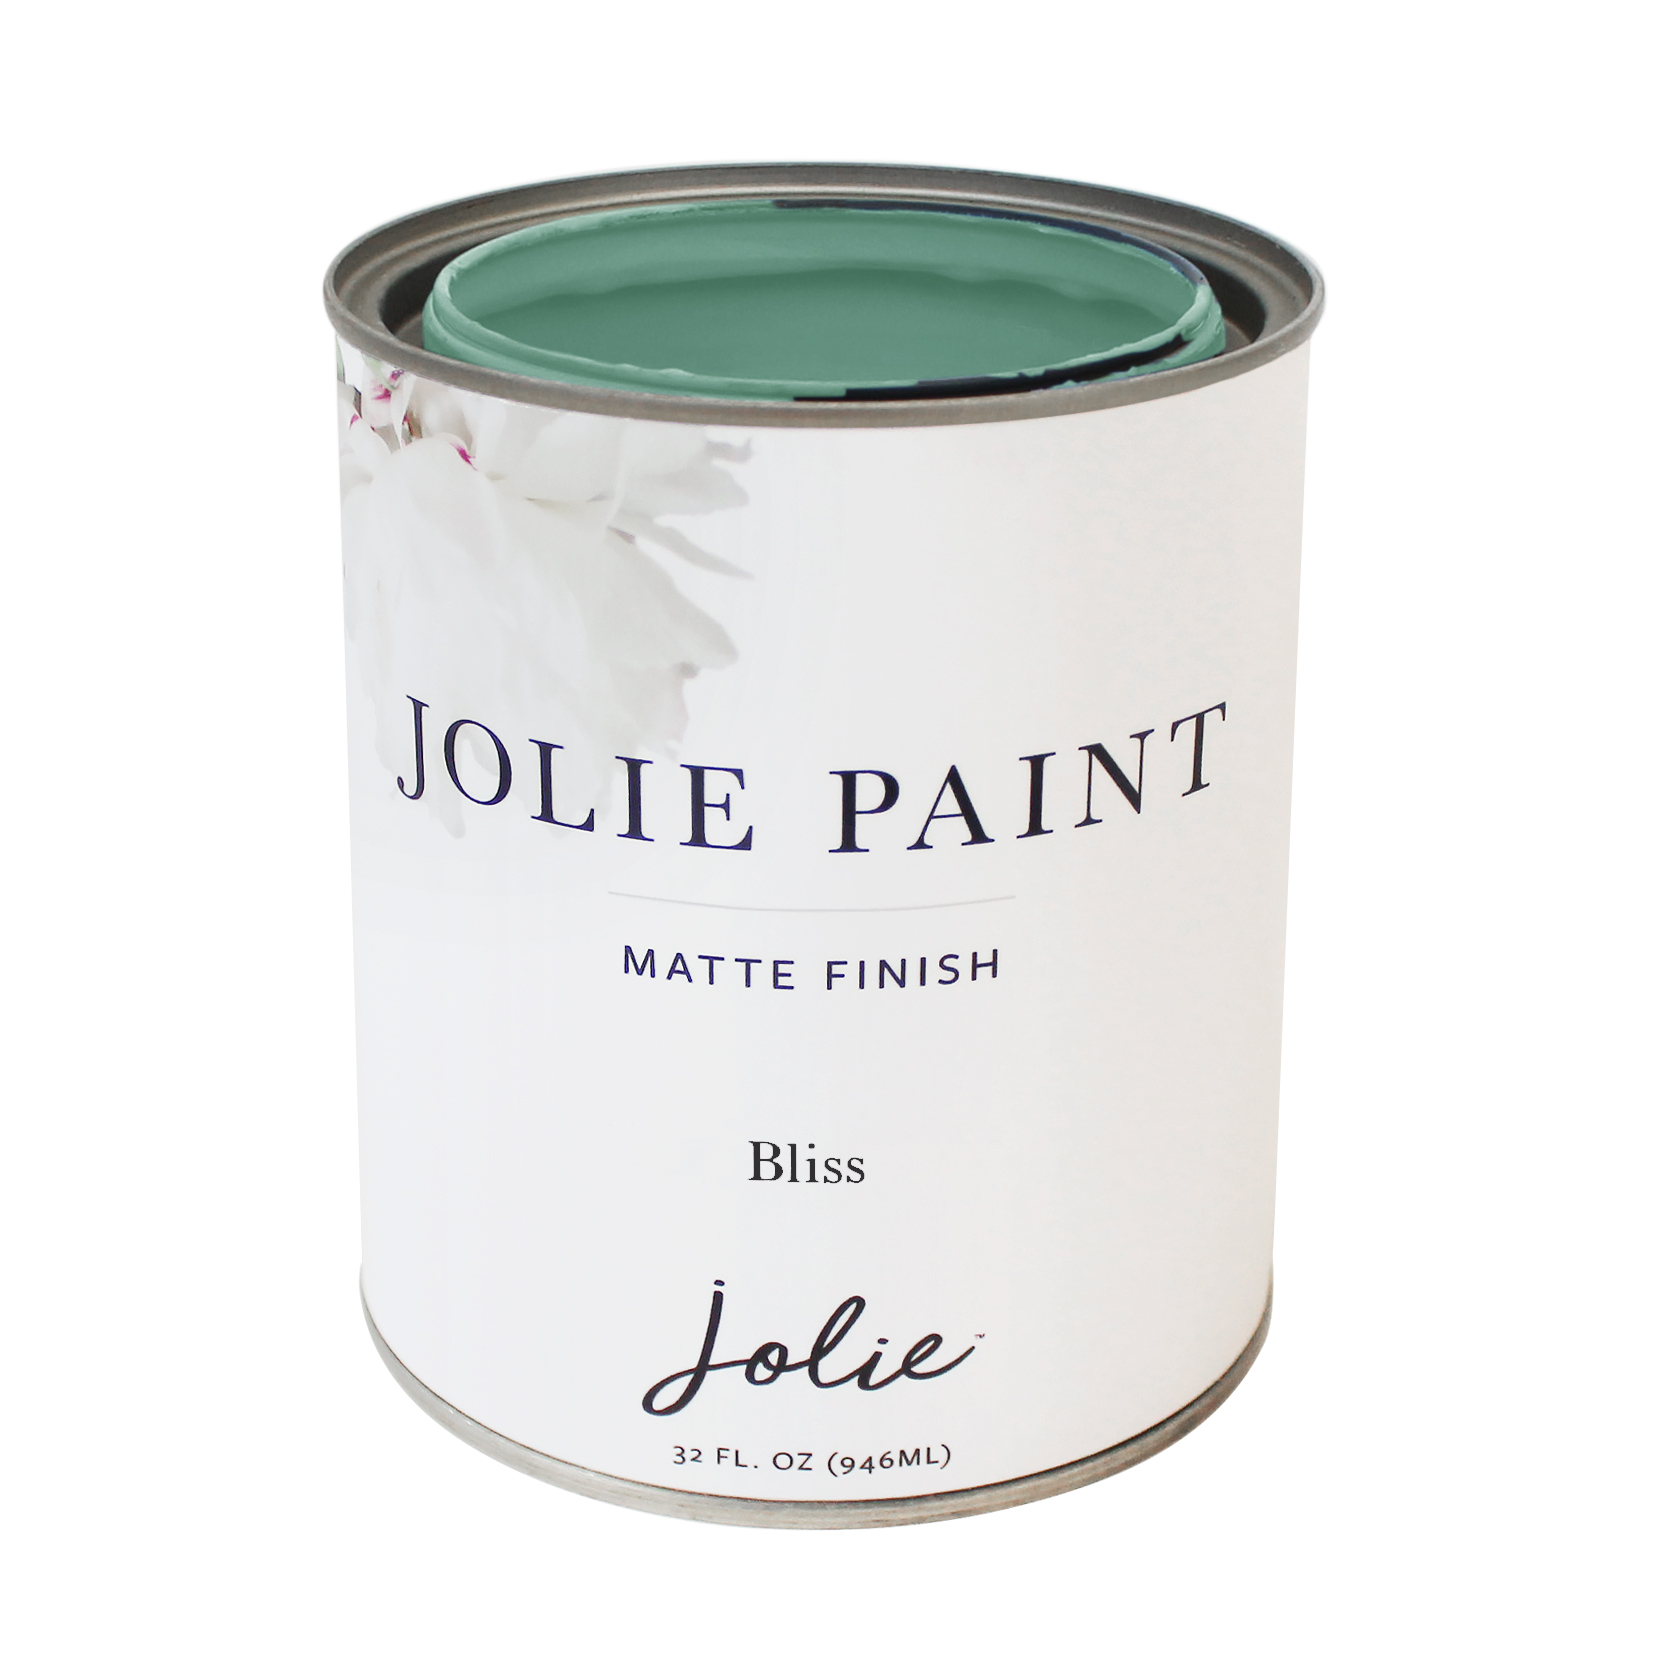 Bliss - Jolie Paint